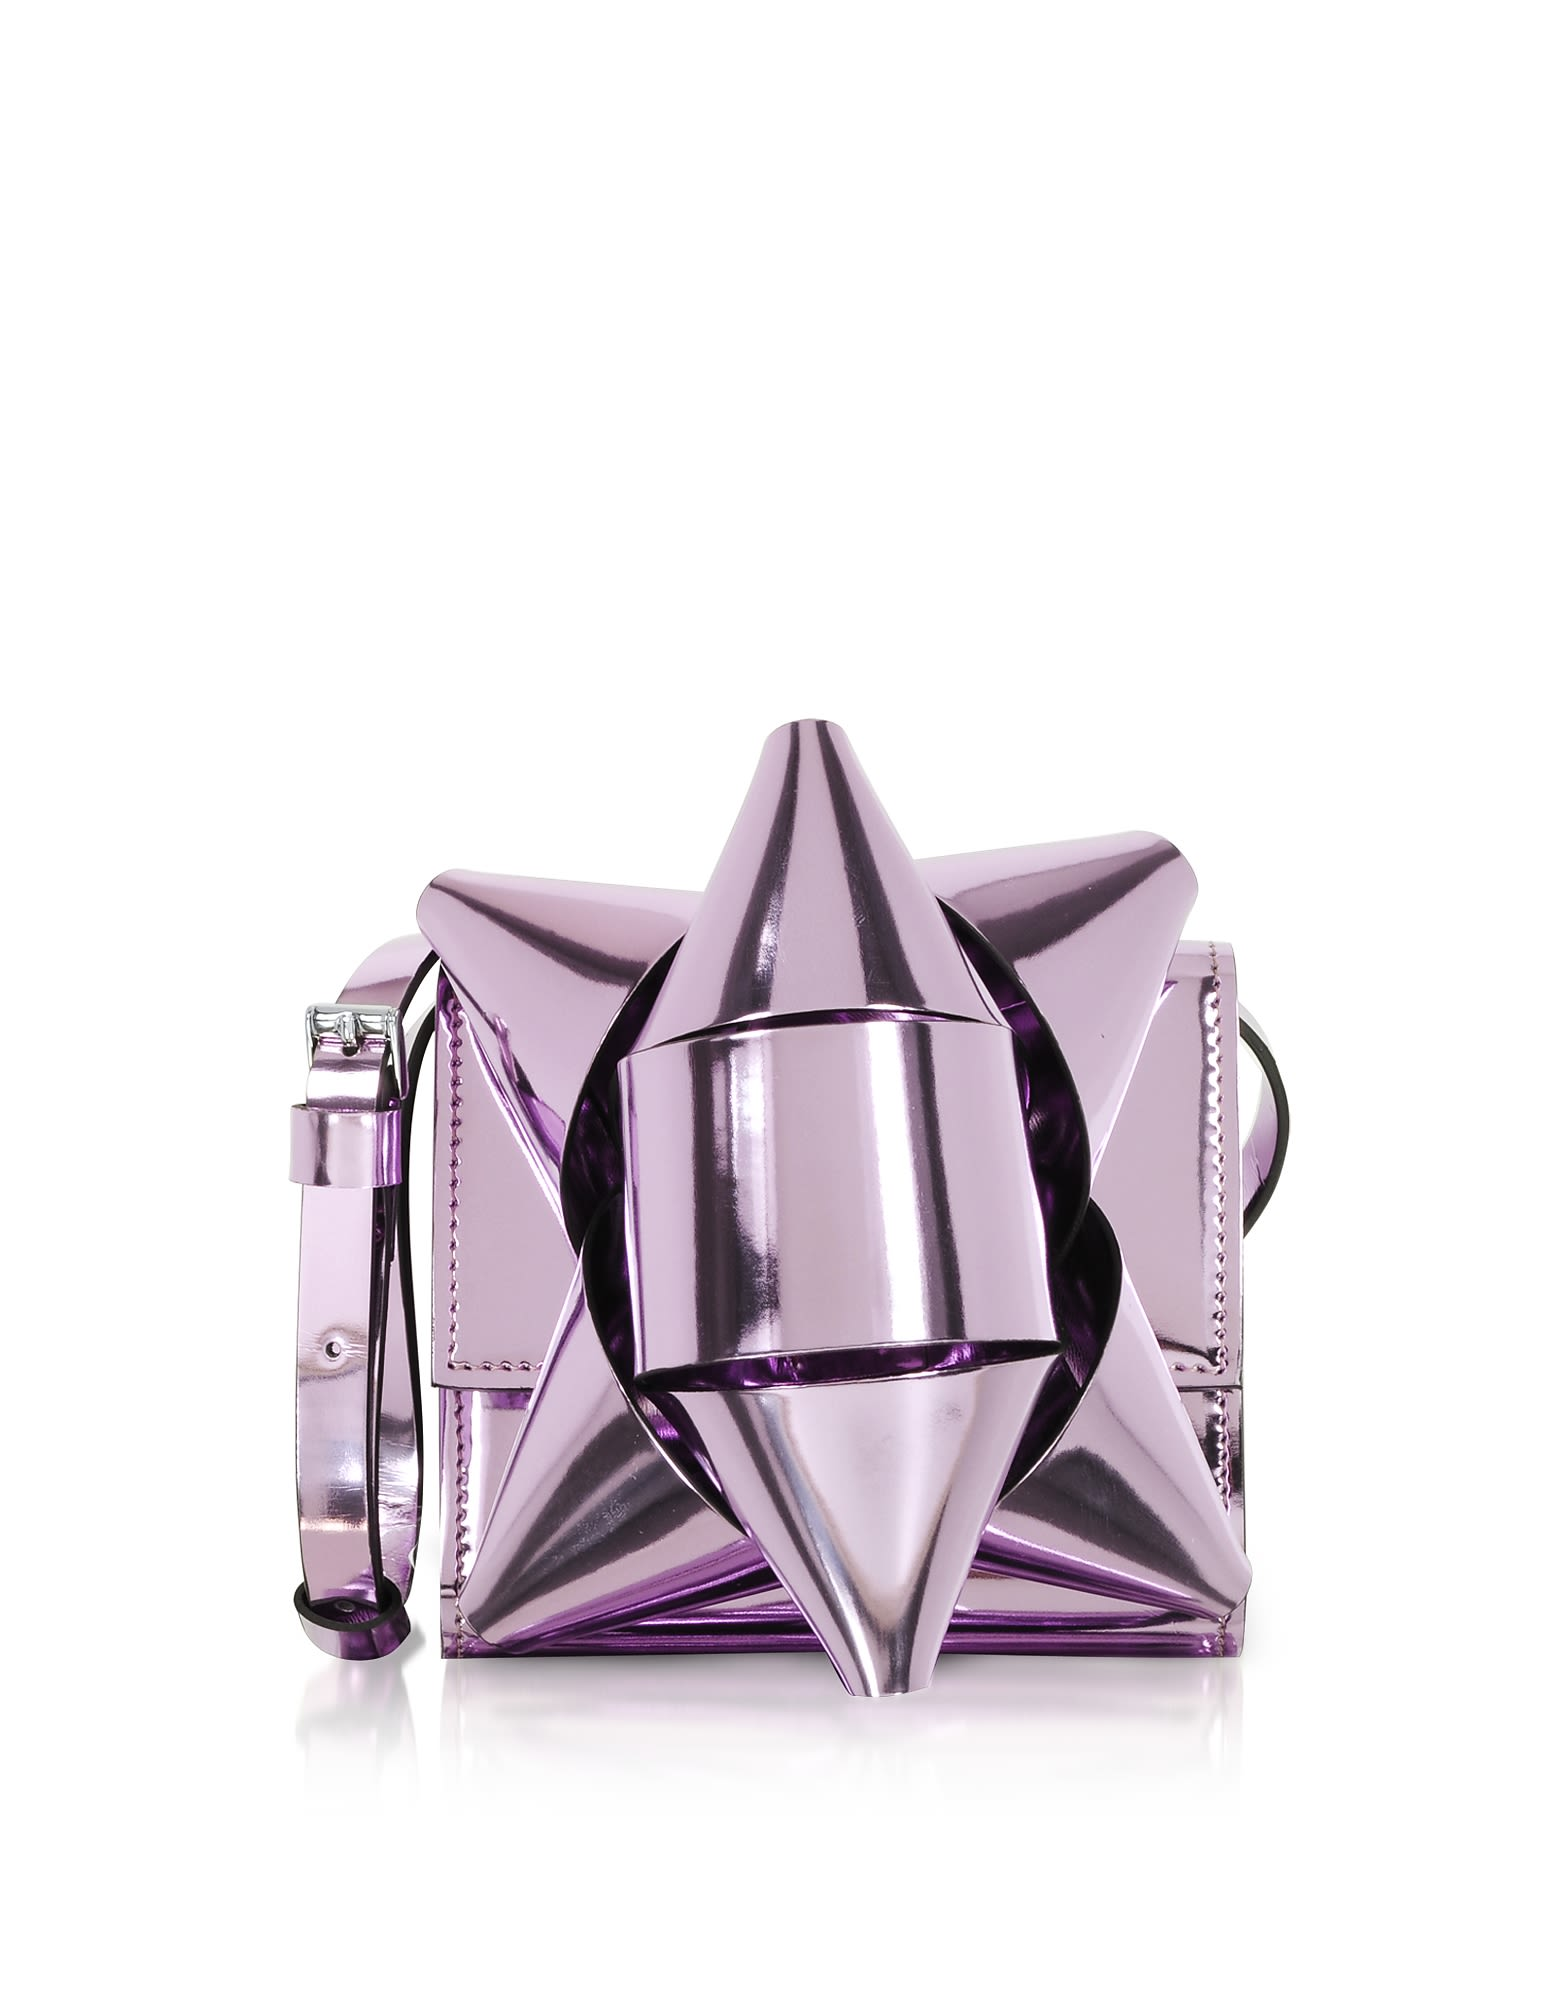 Mm6 Maison Martin Margiela Metallic Eco-Leather Bow Shoulder Bag in Lilac